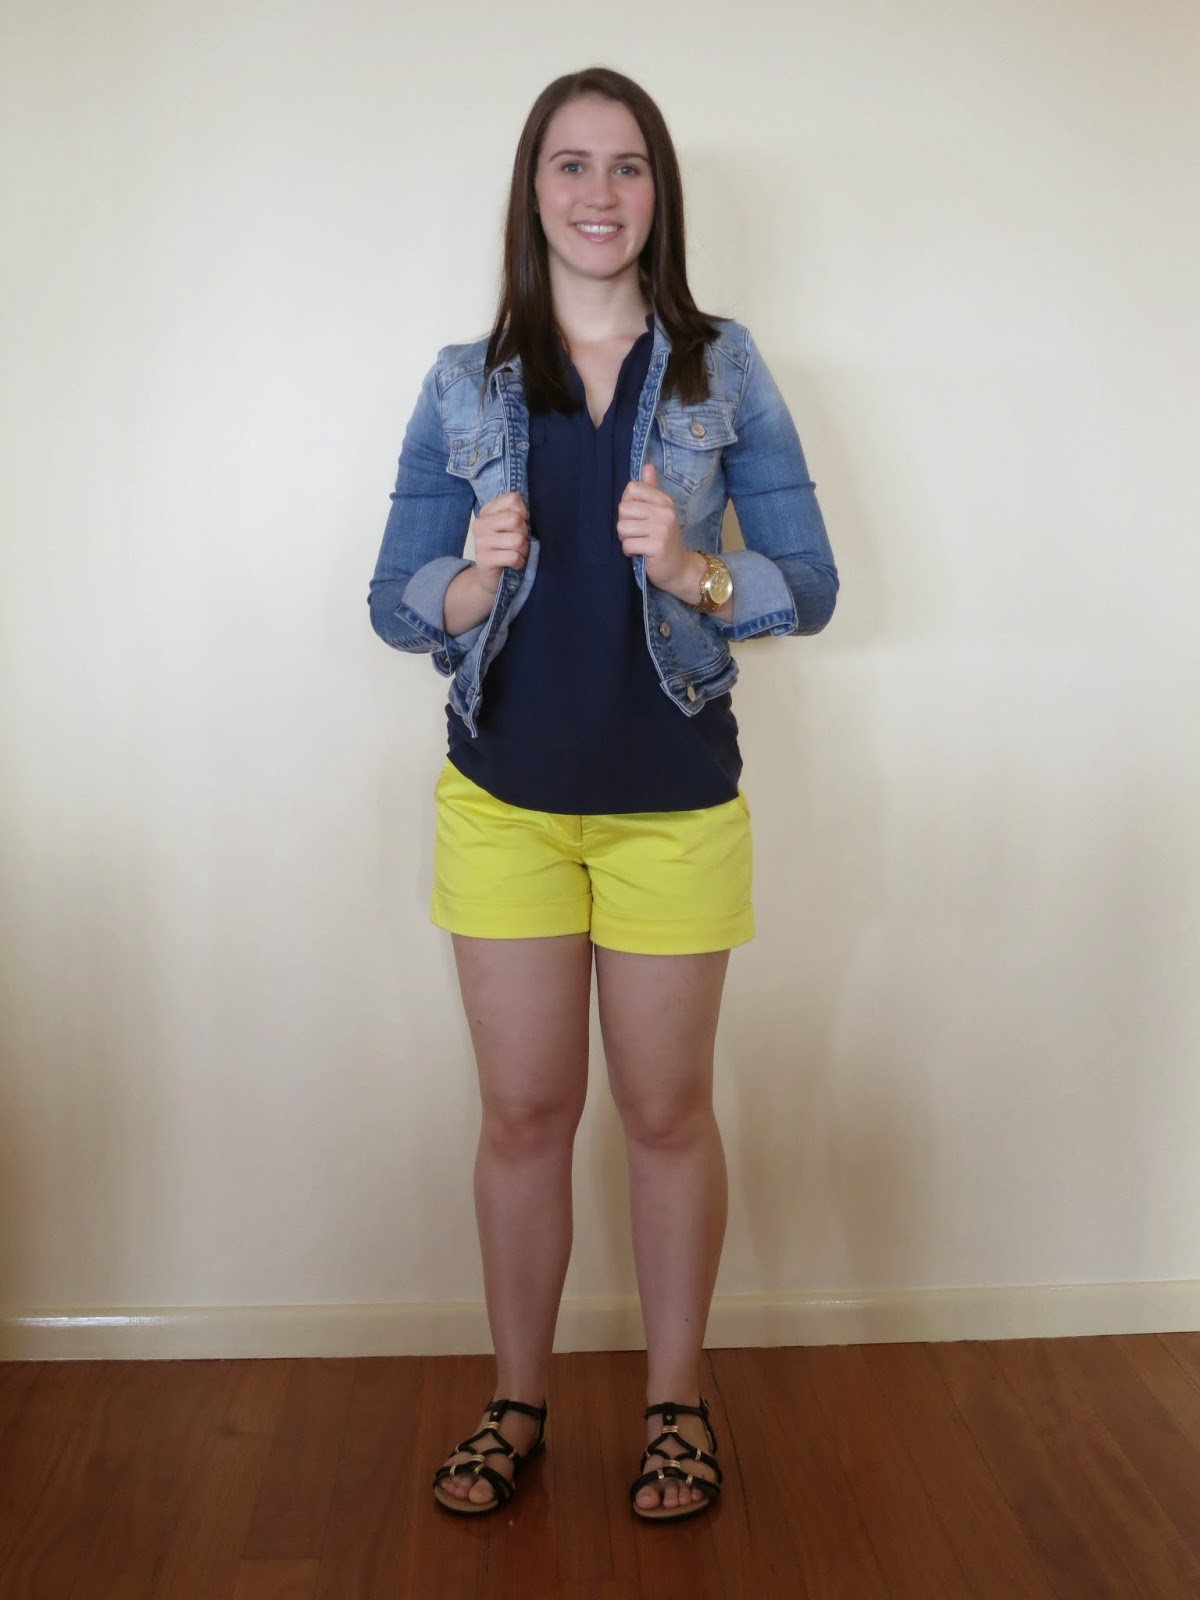 everyday outfit, petite outfit, short girl outfit, yellow shorts, navy tank top, denim jacket and shorts, black and gold sandals and bag, nautical outfit, summer outfit